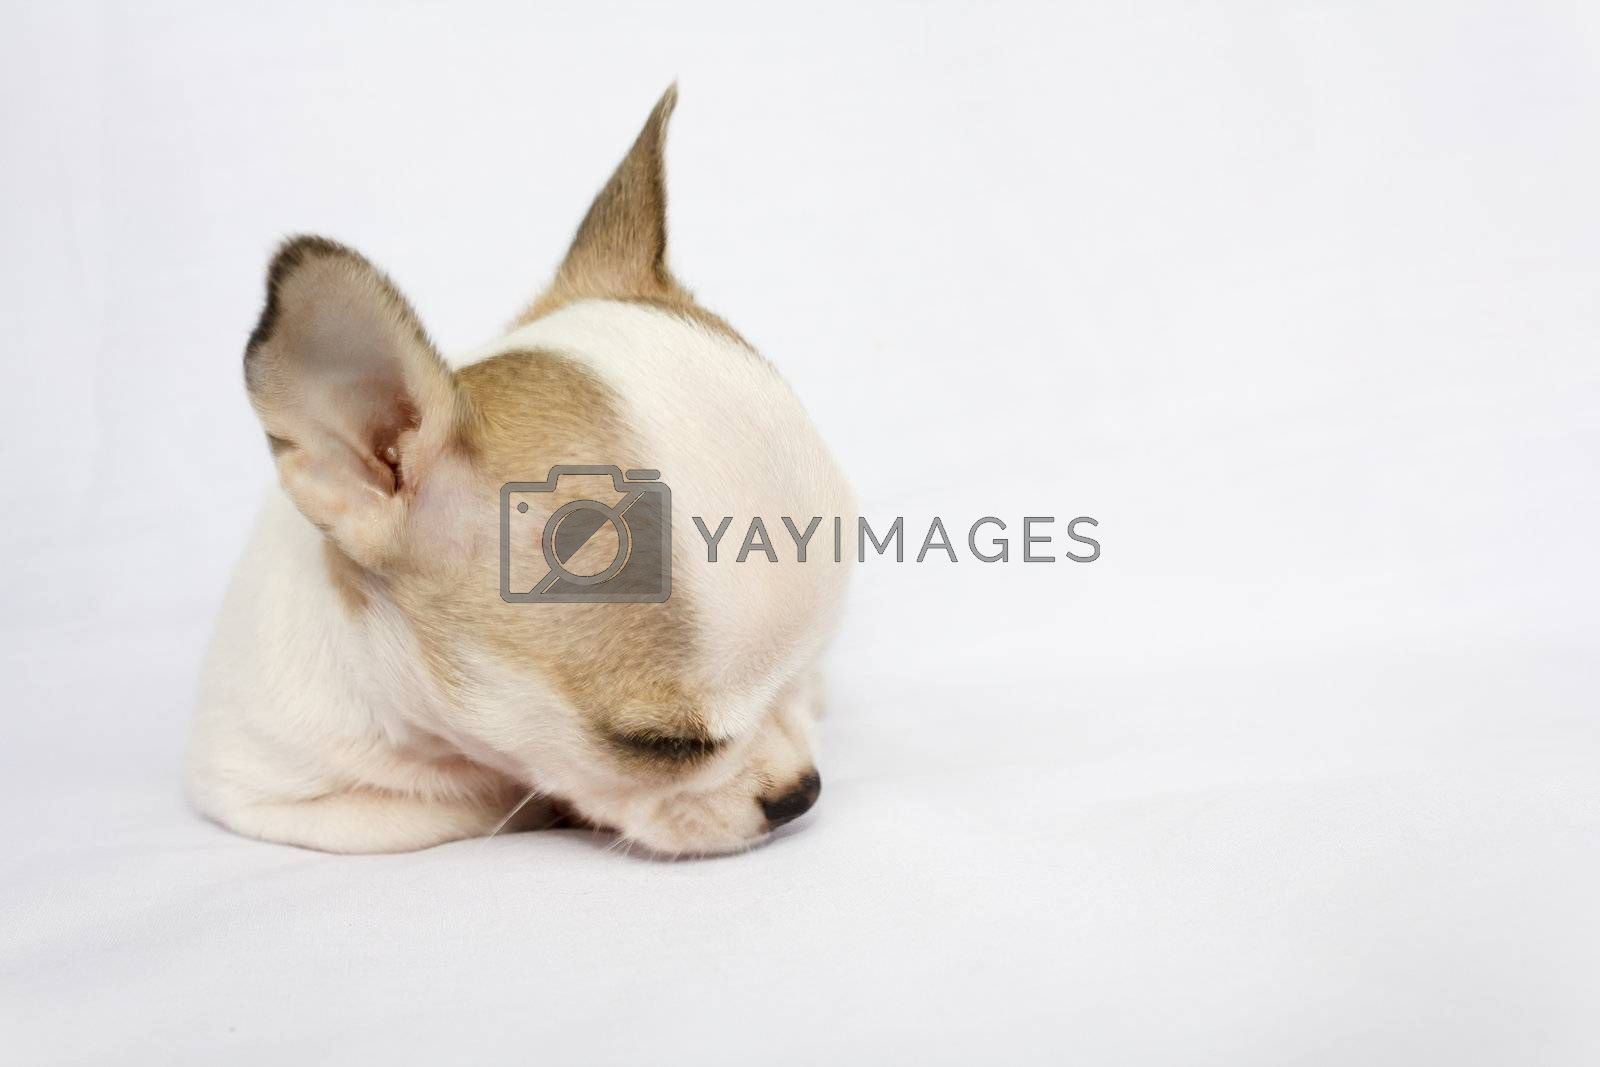 Puppy female chihuahua sleeping on white fabric